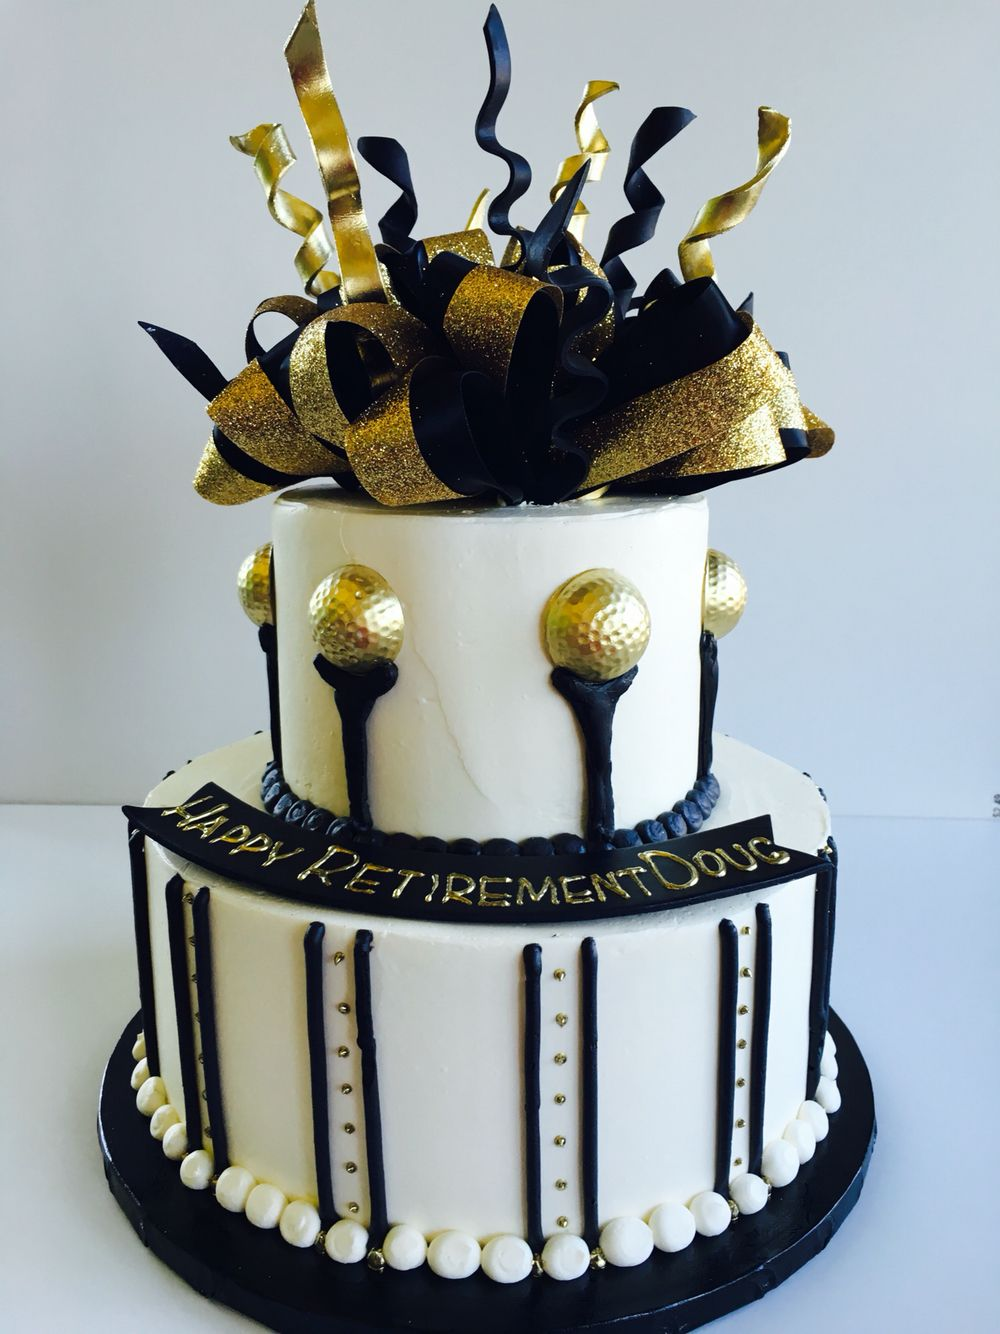 Golf Retirement Cake Black White And Gold Color Scheme Gold Birthday Cake Retirement Cakes Gold Birthday